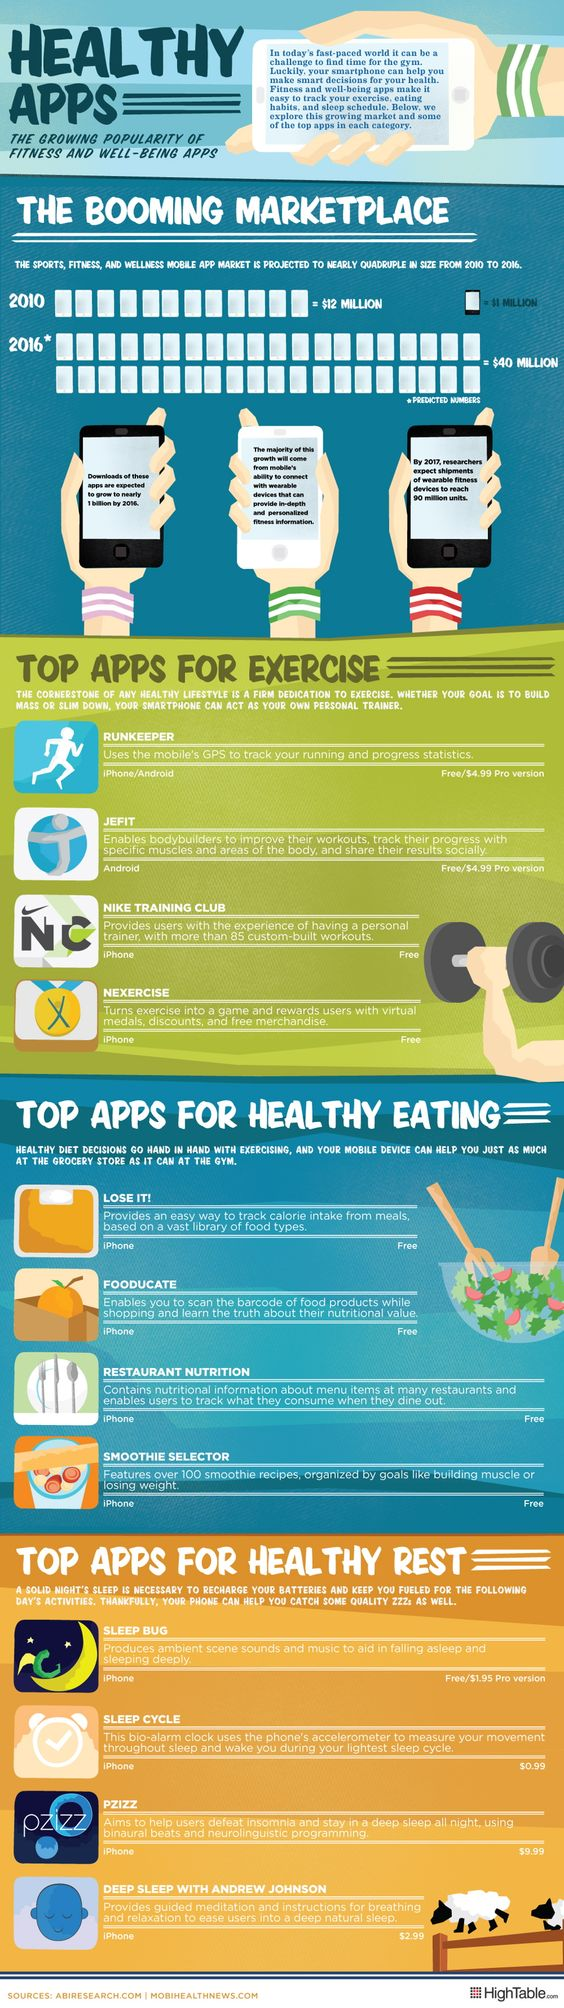 Top #Health and #Fitness Apps to Improve your Workout and Diet #infographic - These are perfect!